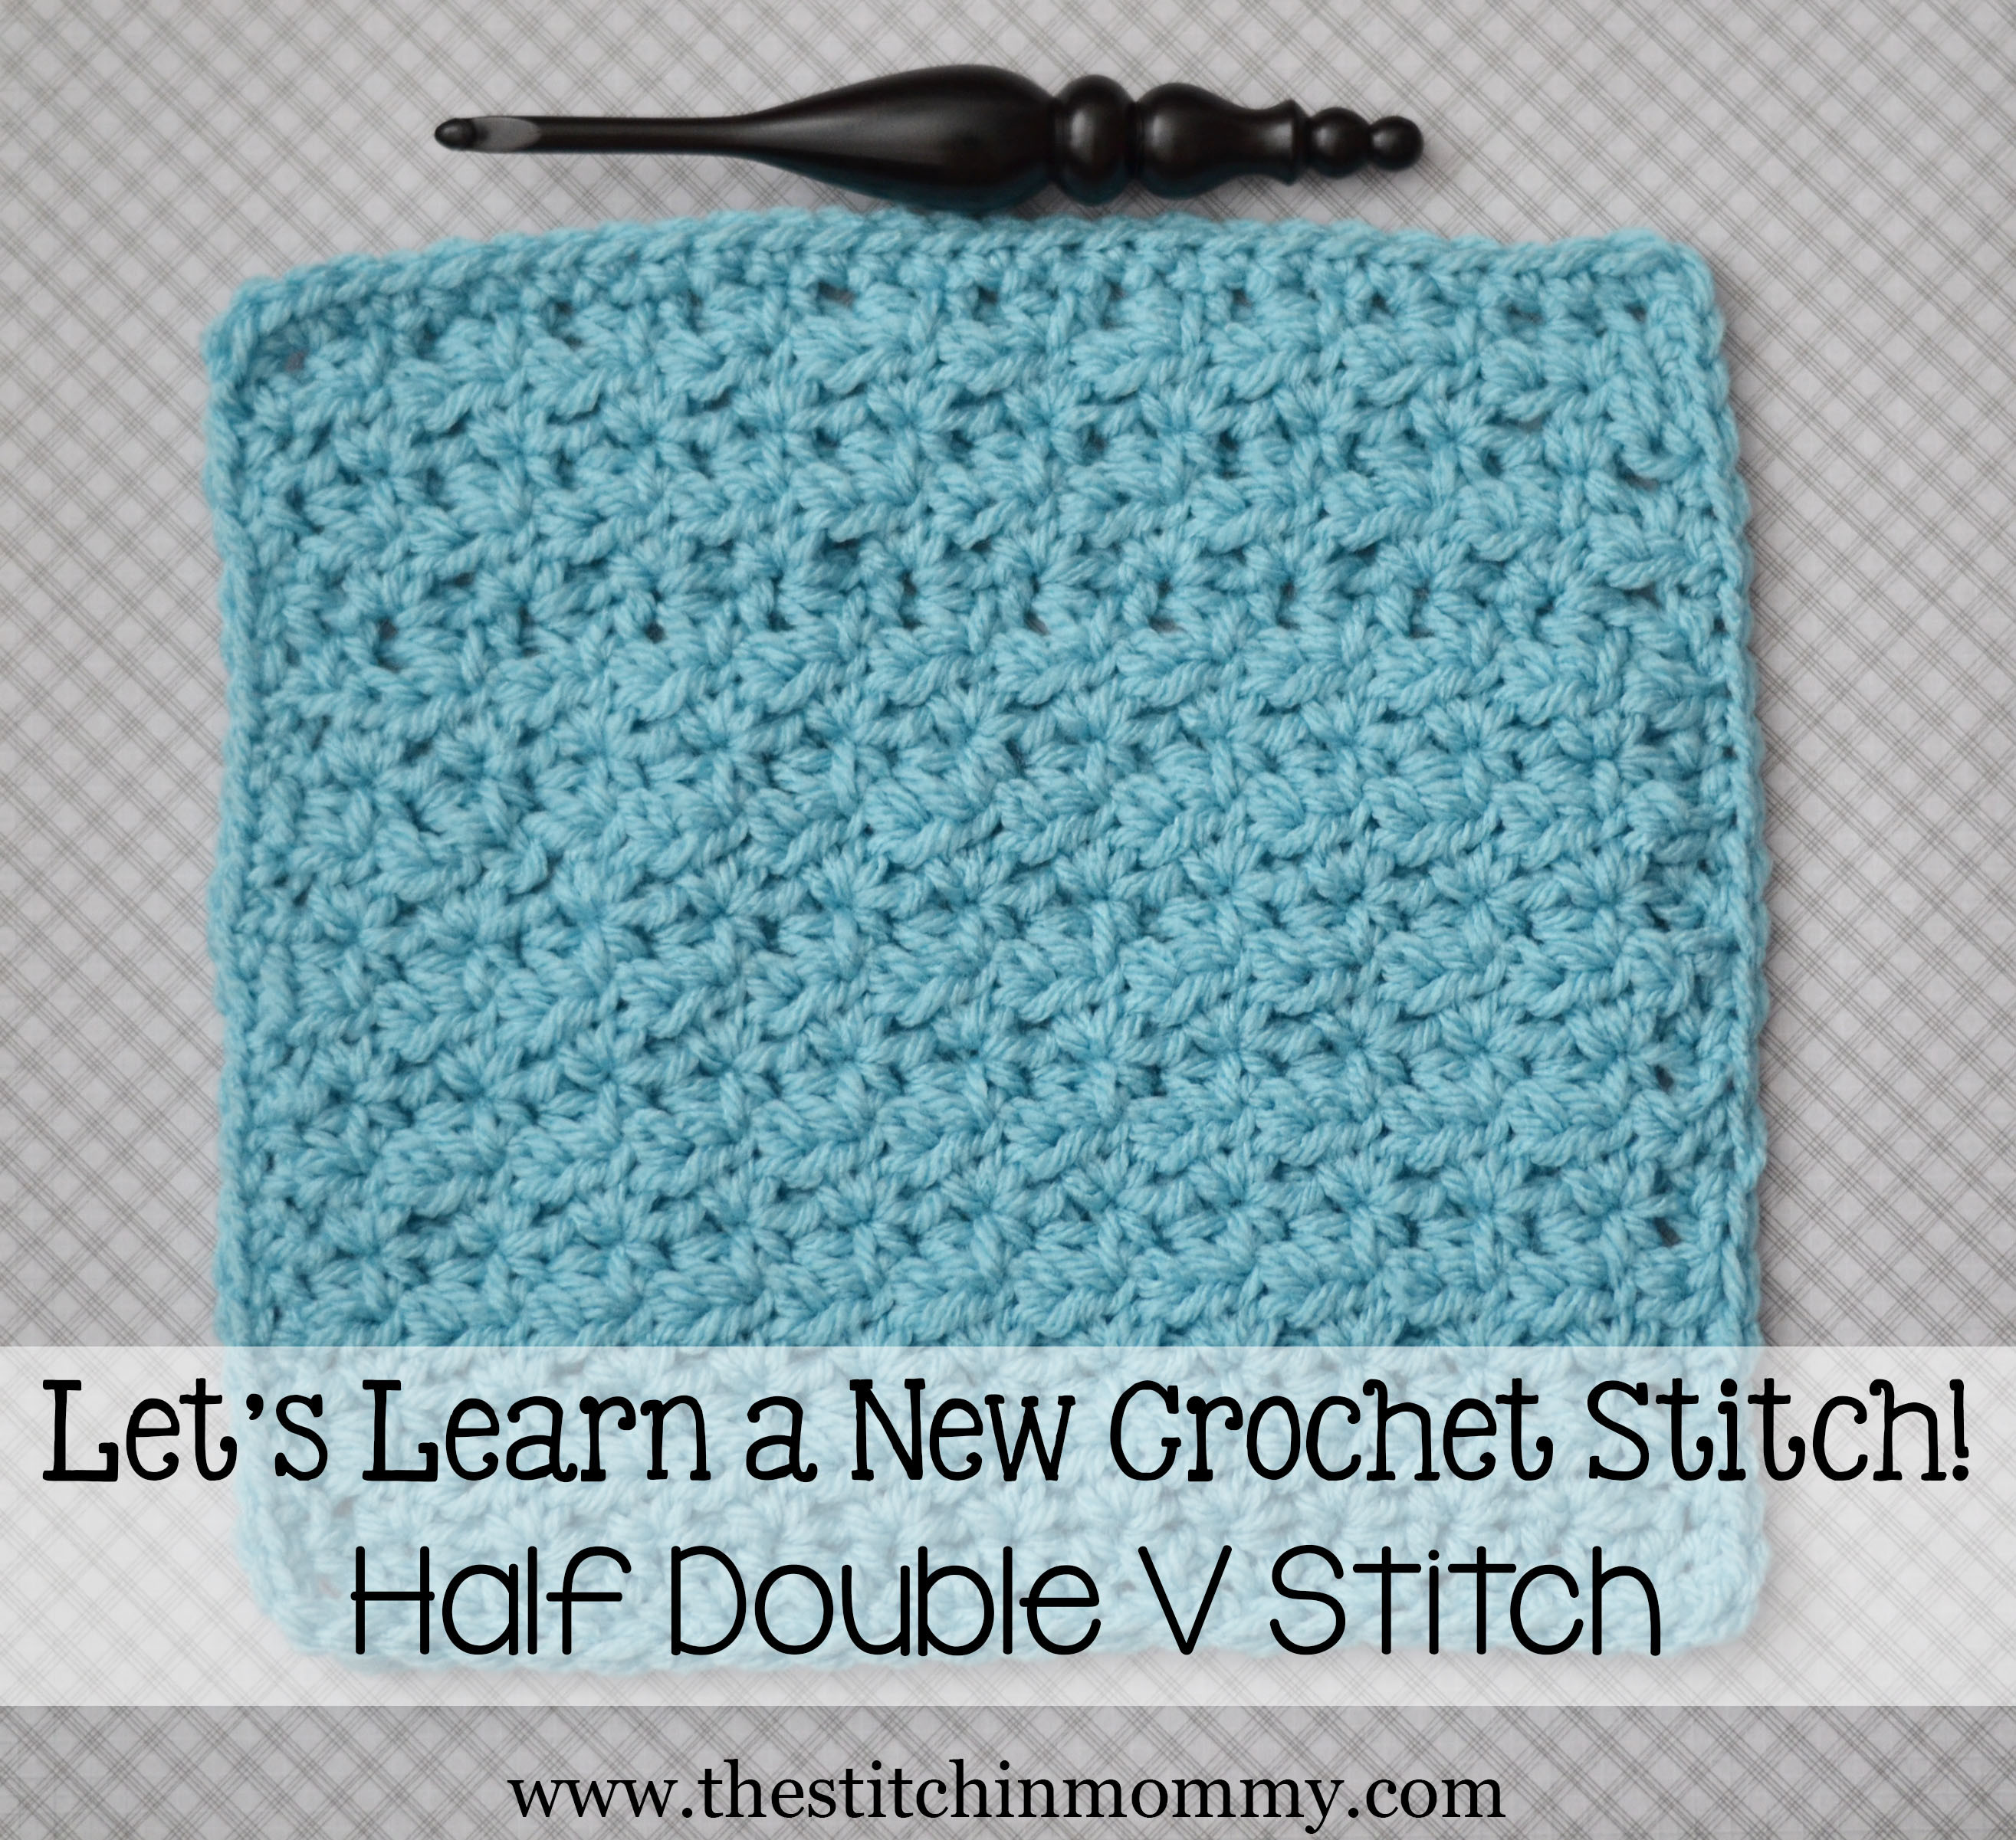 Crochet Afghan Stitch Best Of Half Double V Stitch Tutorial and Afghan Square Of Attractive 40 Ideas Crochet Afghan Stitch